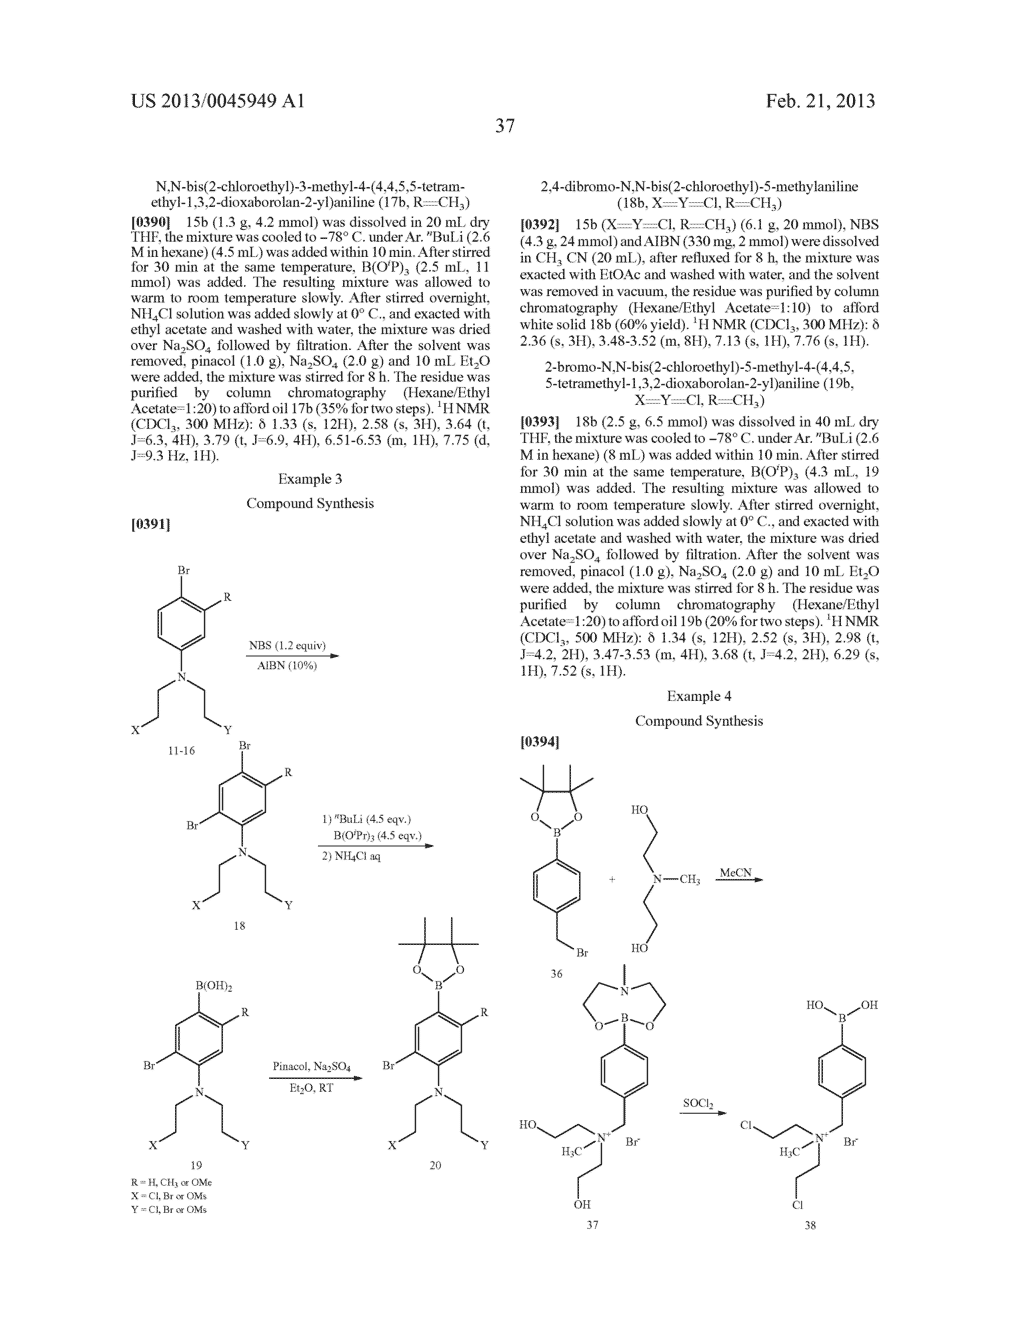 ANTI-CANCER AGENTS - diagram, schematic, and image 51